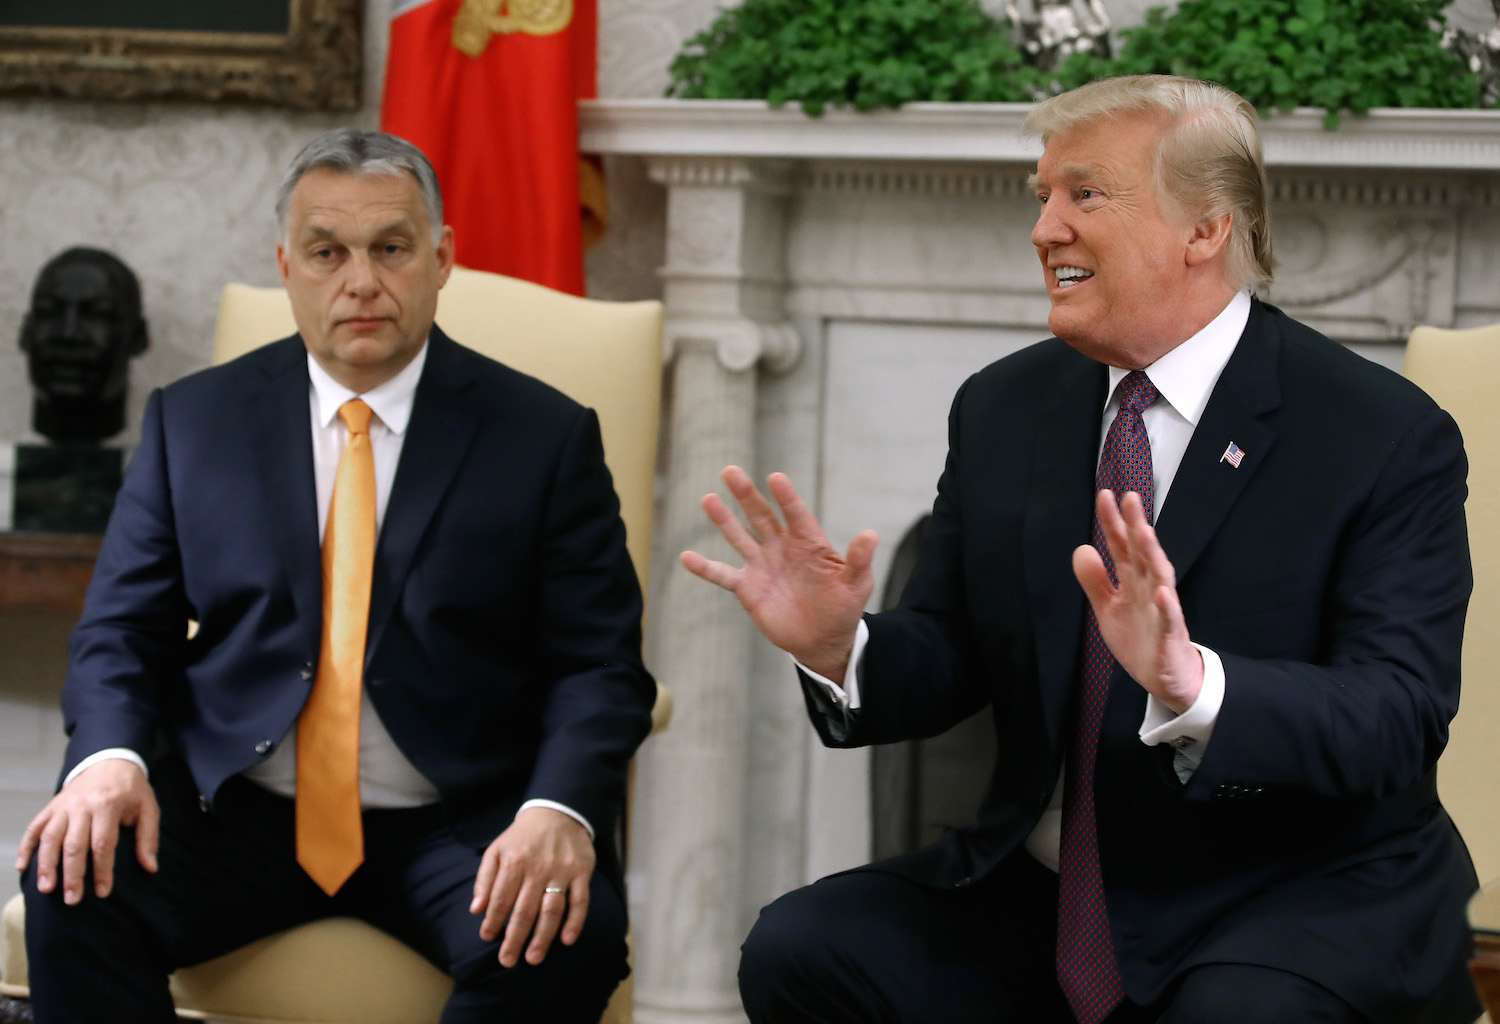 WASHINGTON, DC - MAY 13: U.S. President Donald Trump speaks to the media during a meeting with Hungarian Prime Minister Viktor Orban, in the Oval Office on May 13, 2019 in Washington, DC. President Trump took questions on trade with China, Iran and other topics. (Photo by Mark Wilson/Getty Images)